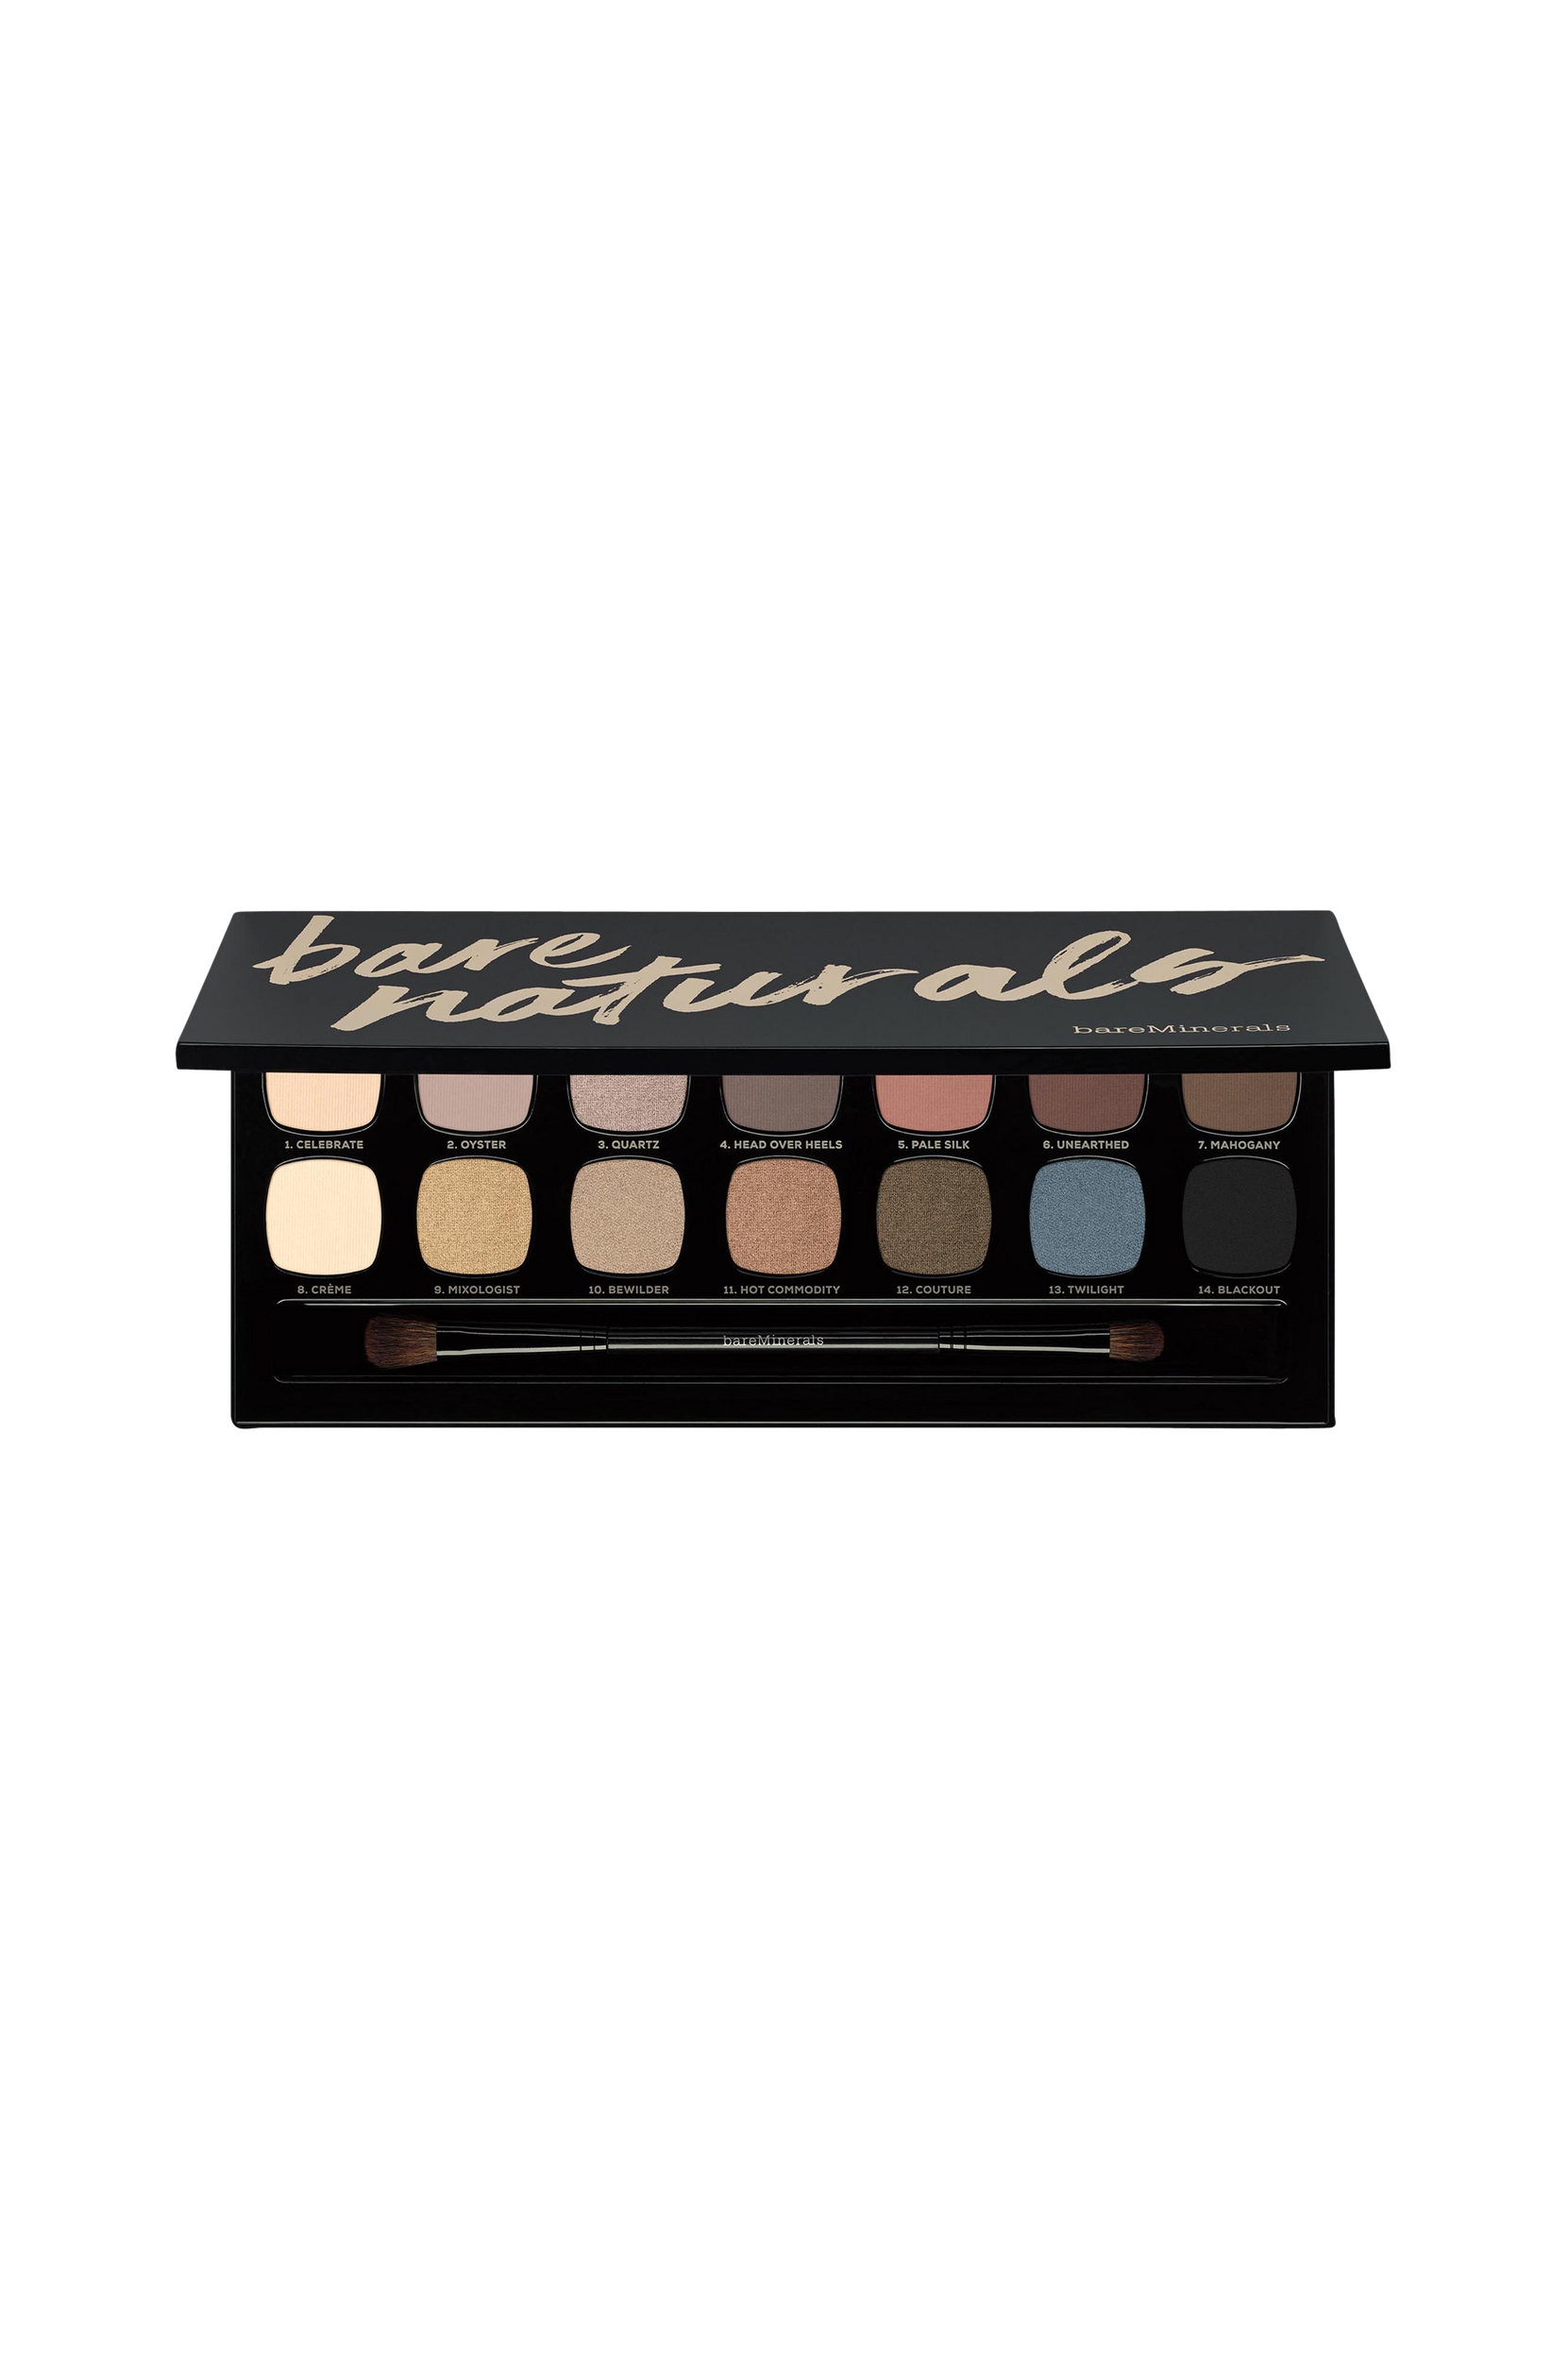 READY 14.0 Eyshadow Palette Bare Naturals